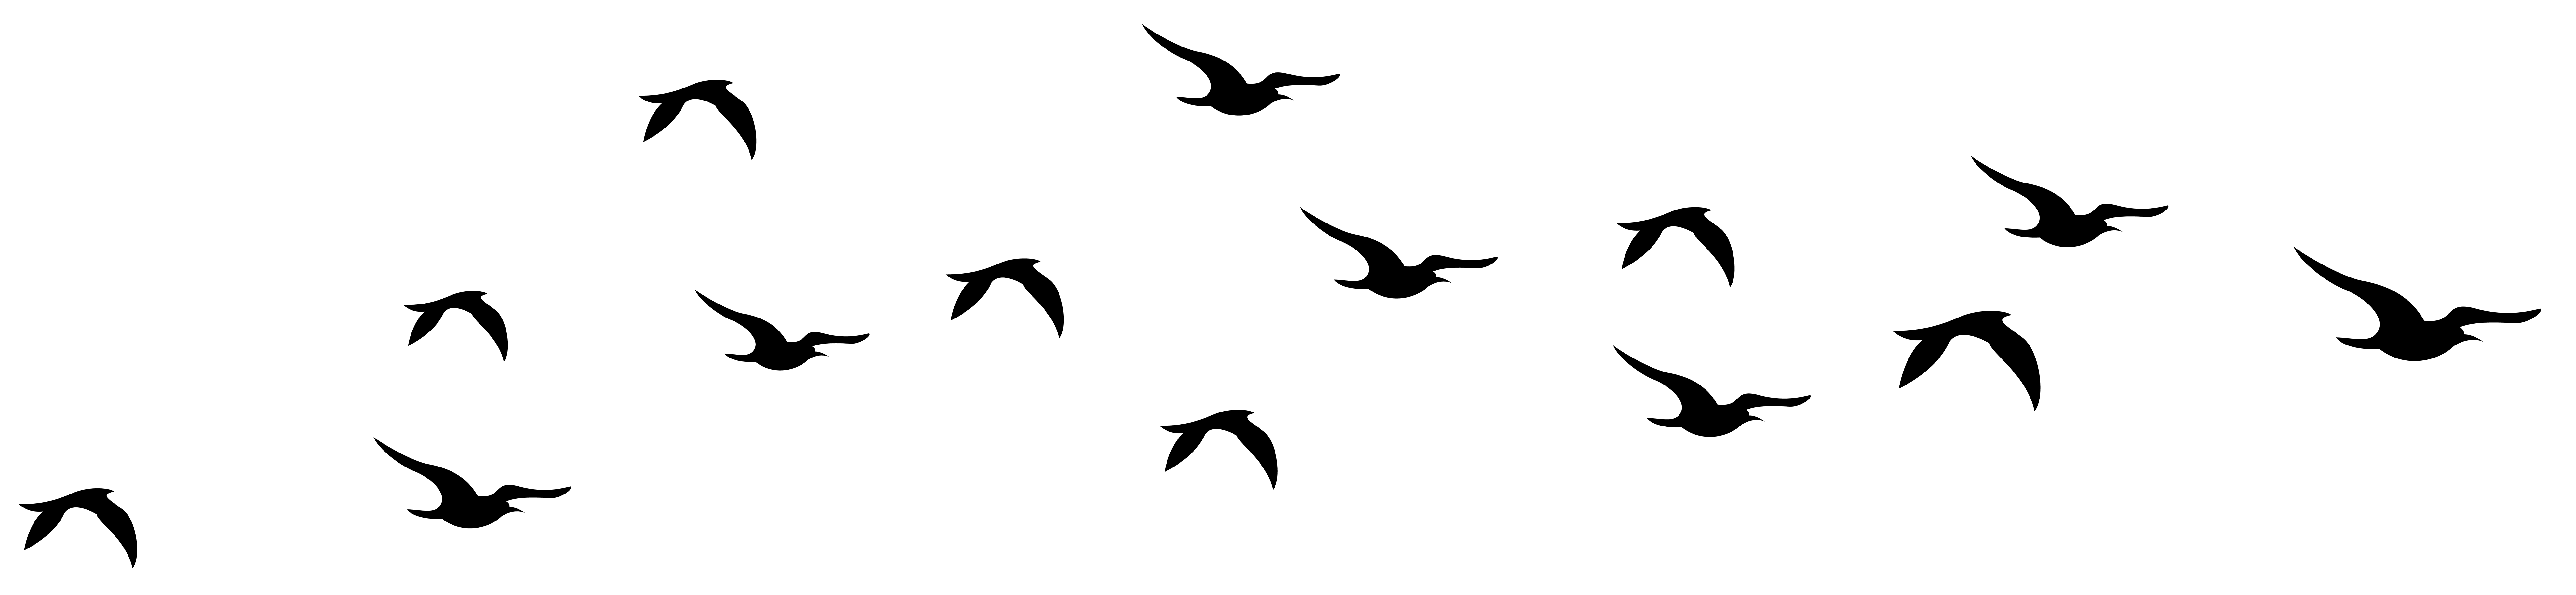 7919x1829 Bird Silhouette Flying Transparent Png